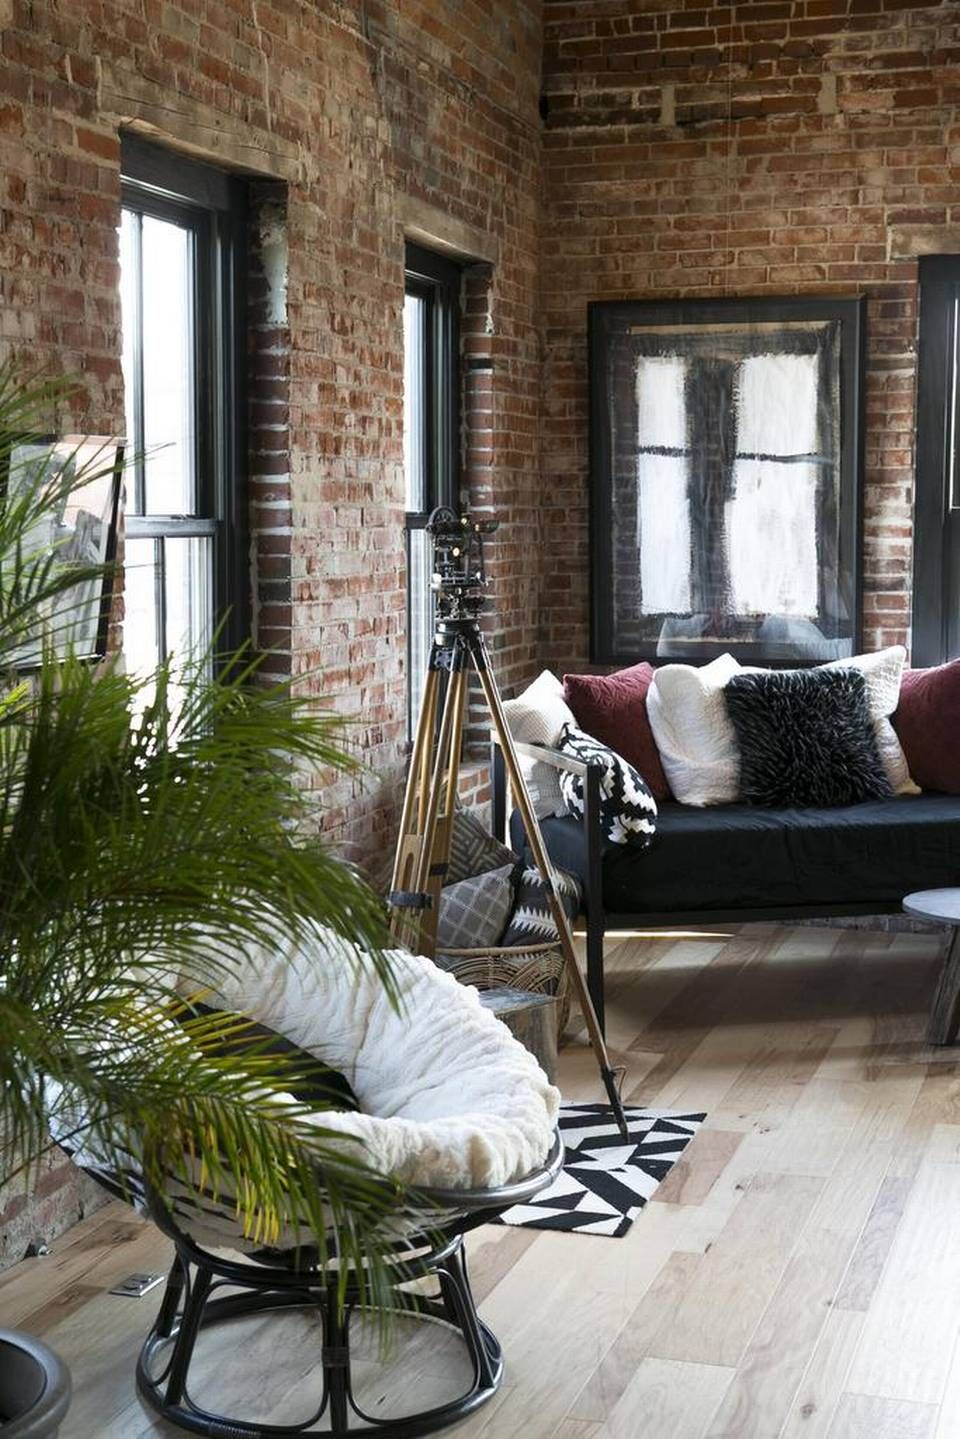 Artist And Designer Creates Urban Loft In Renovated Downtown Images, Photos, Reviews